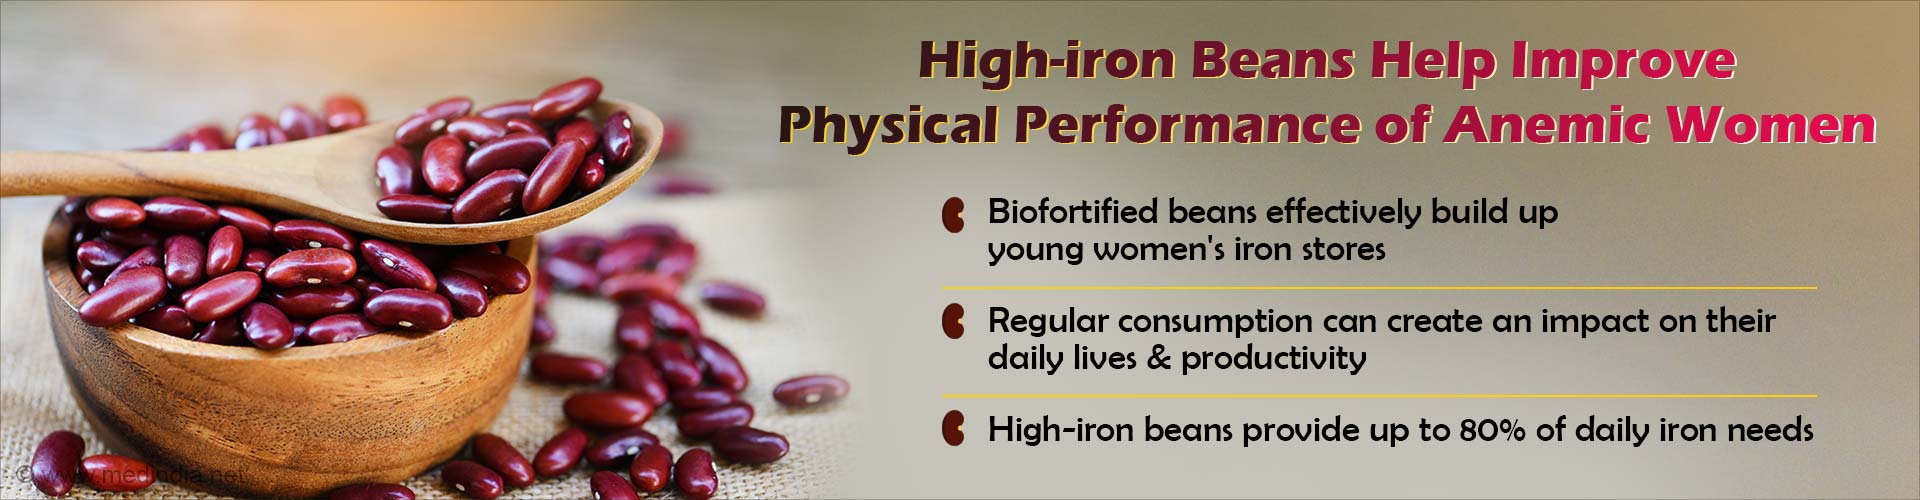 Iron-Biofortified Beans Improve Health of Anemic Women